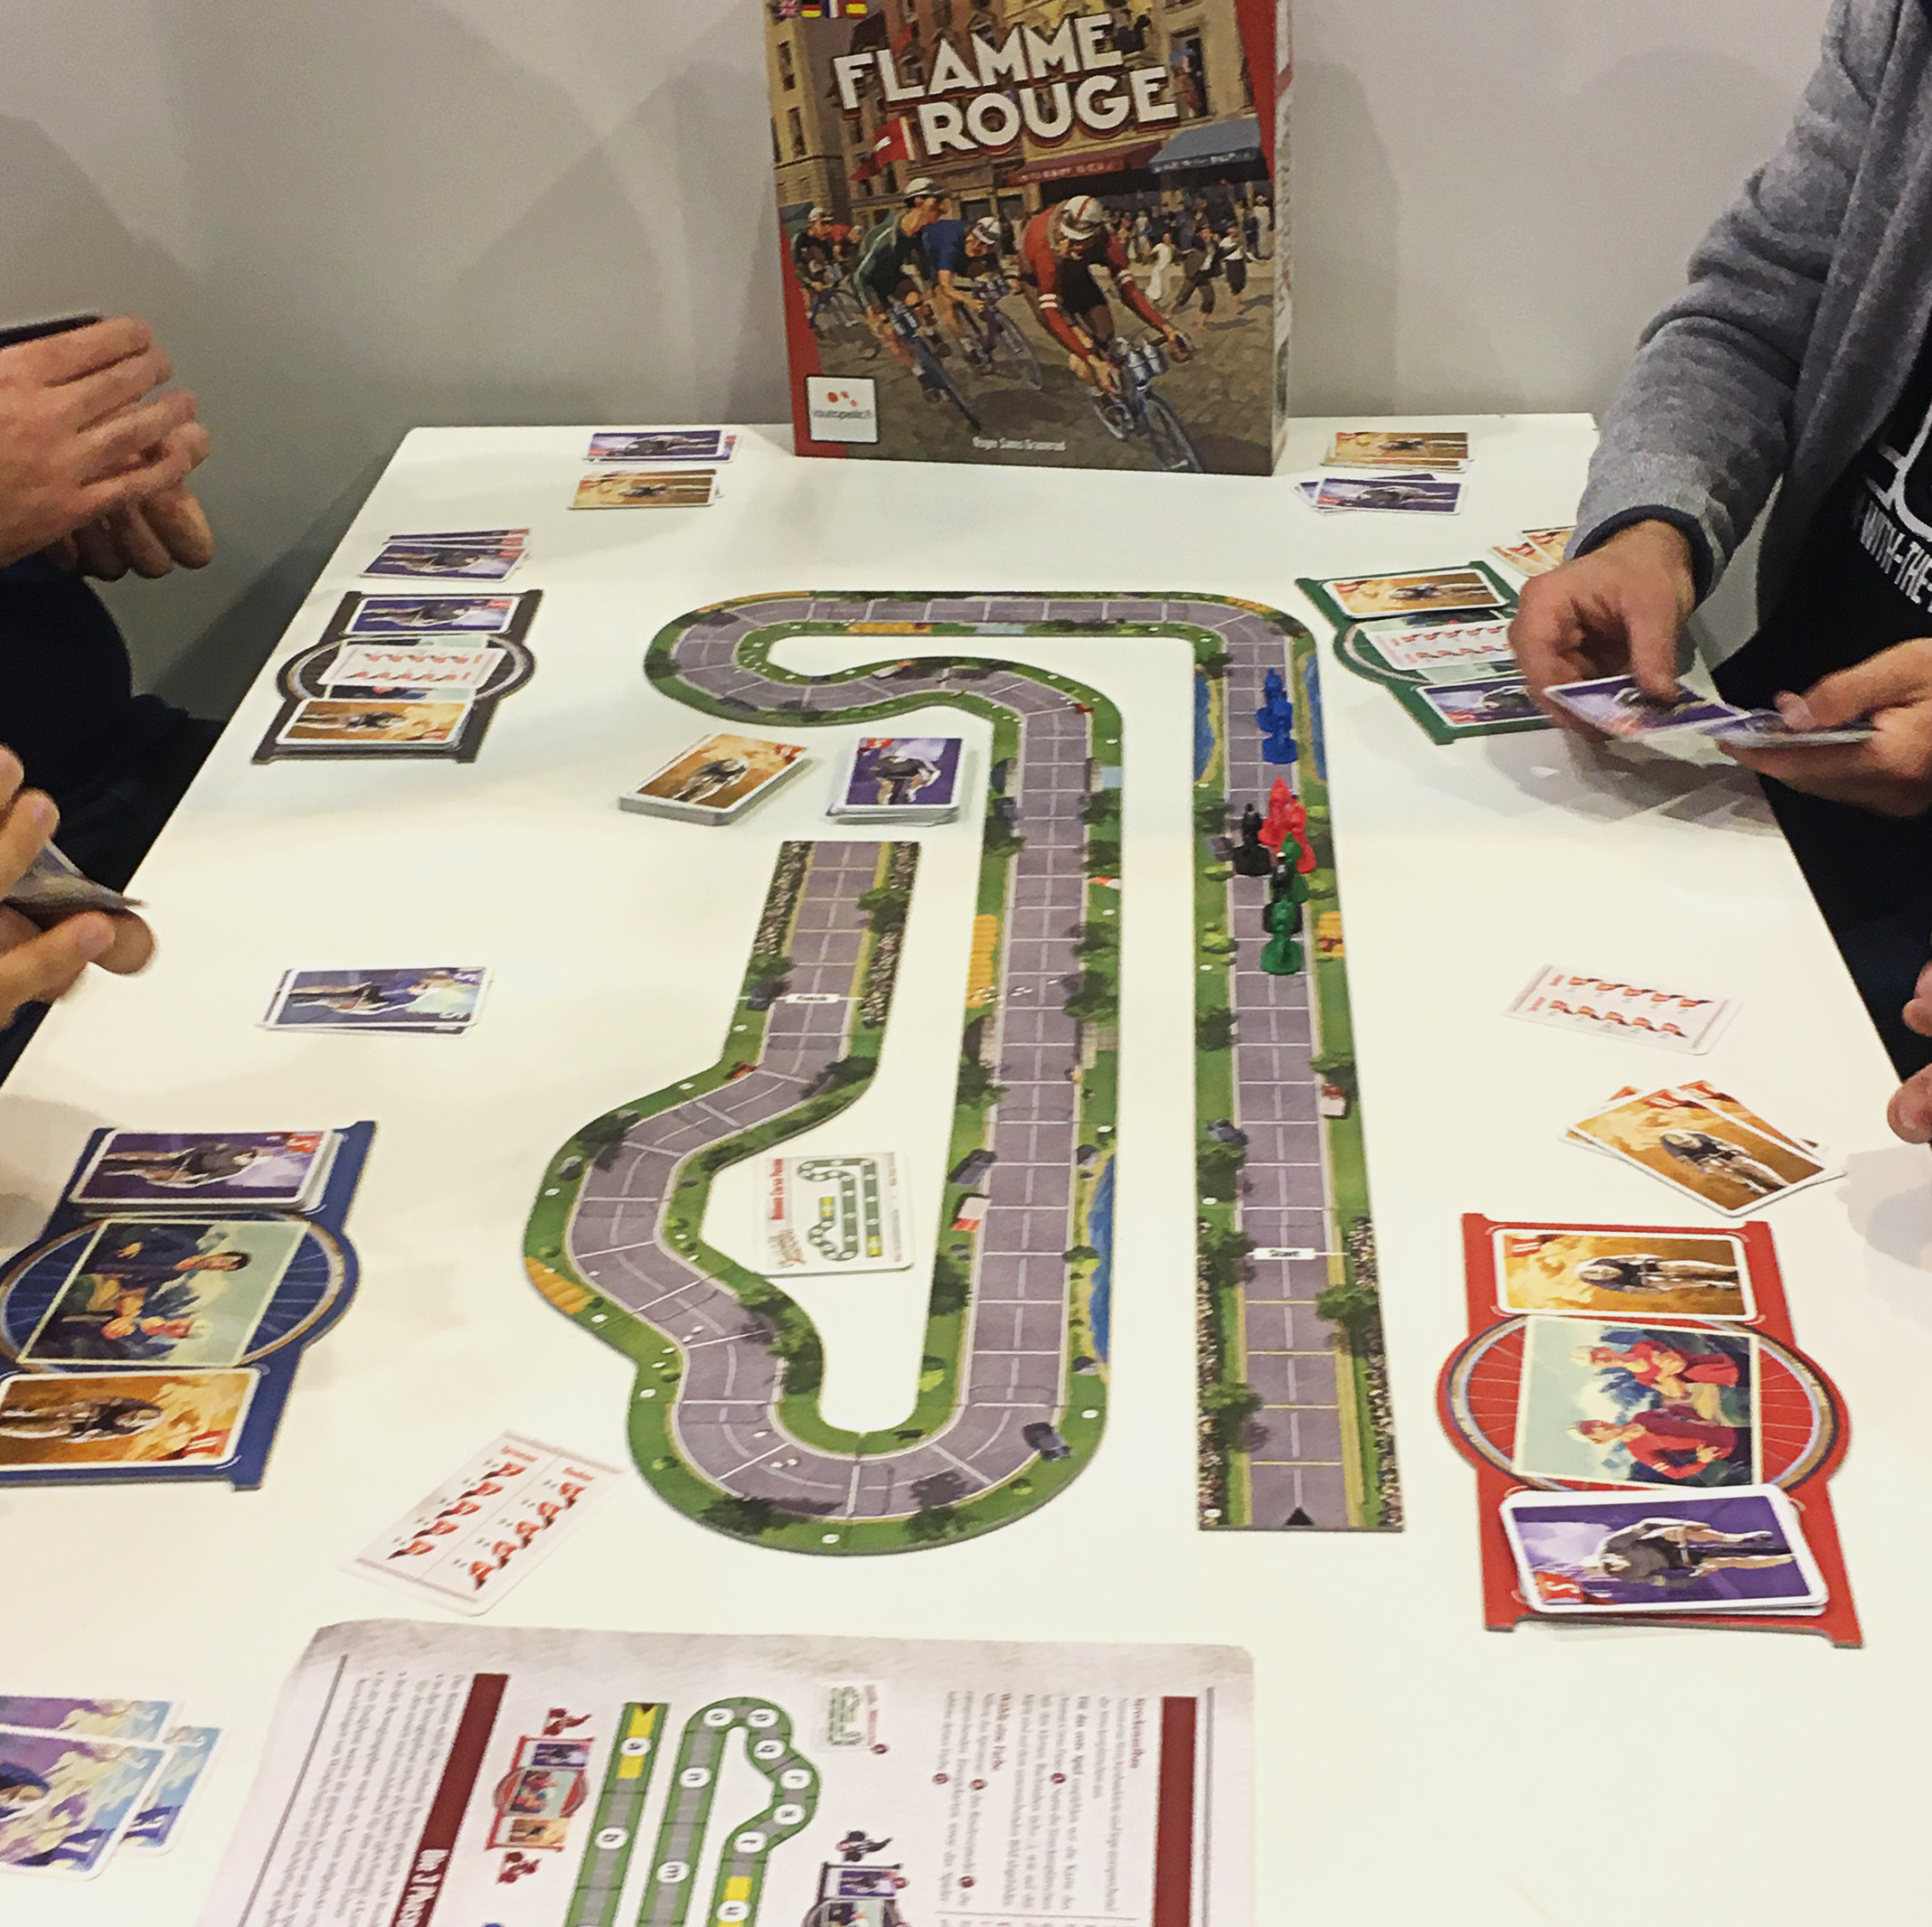 People playing La Flamme Rouge at Essen.